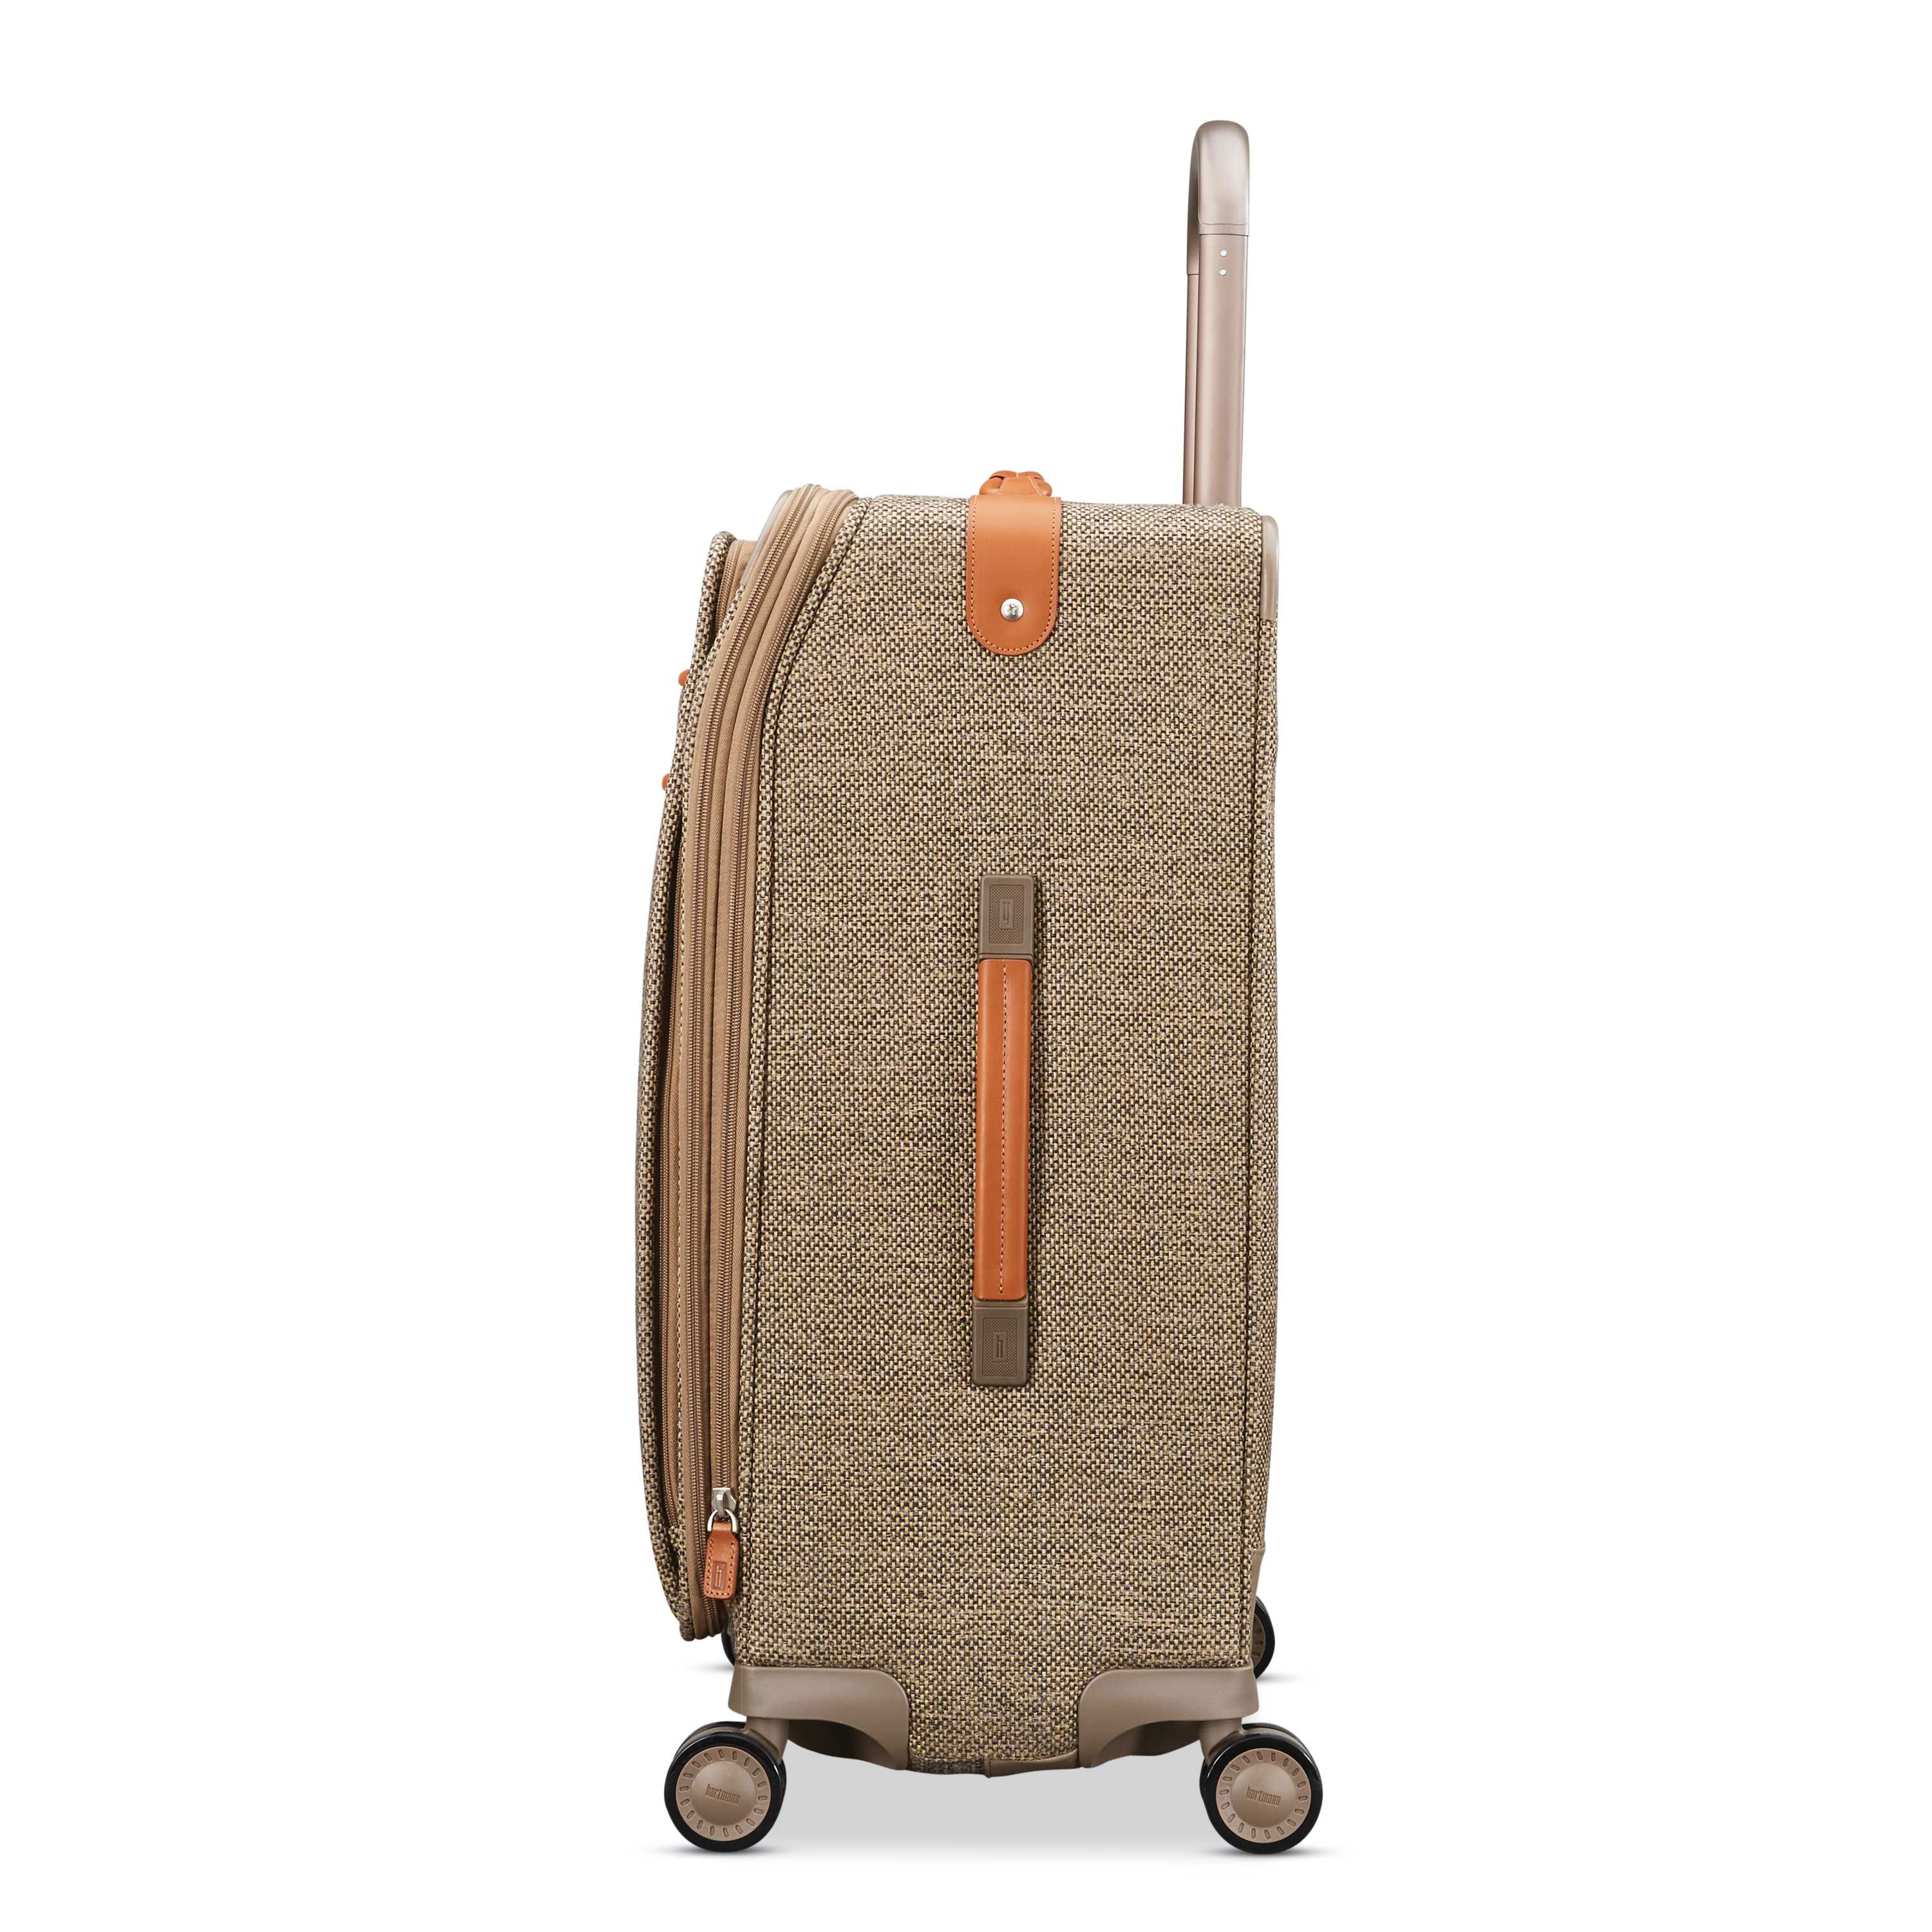 463c2b2c15 Hartmann Tweed Legend Medium Journey Expandable Spinner in the color  Natural Tweed.